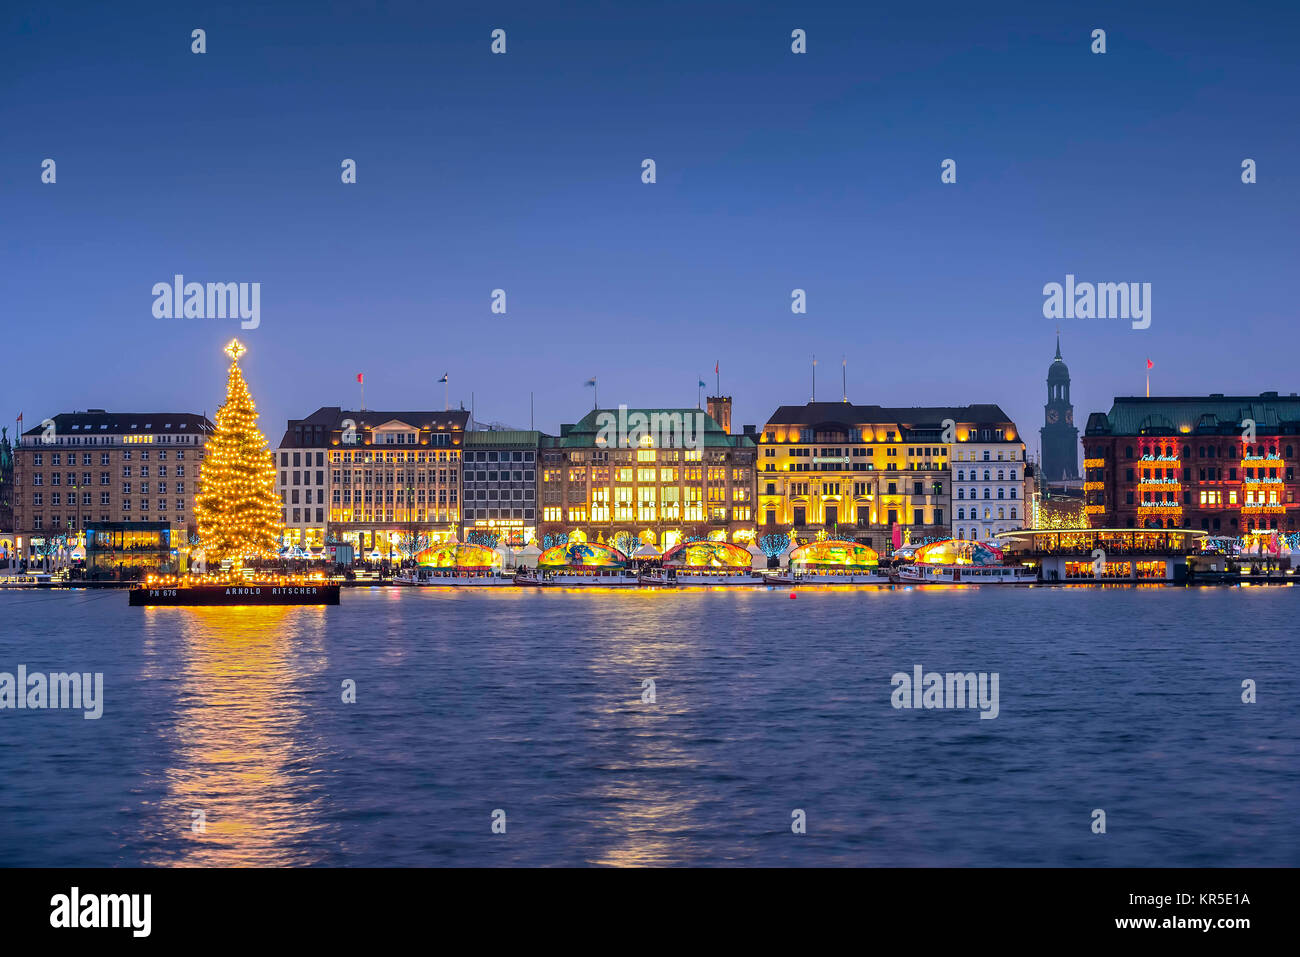 Alster fir to the christmas time on the Inner Alster in Hamburg, Germany, Europe, Alstertanne zur Weihnachtszeit - Stock Image